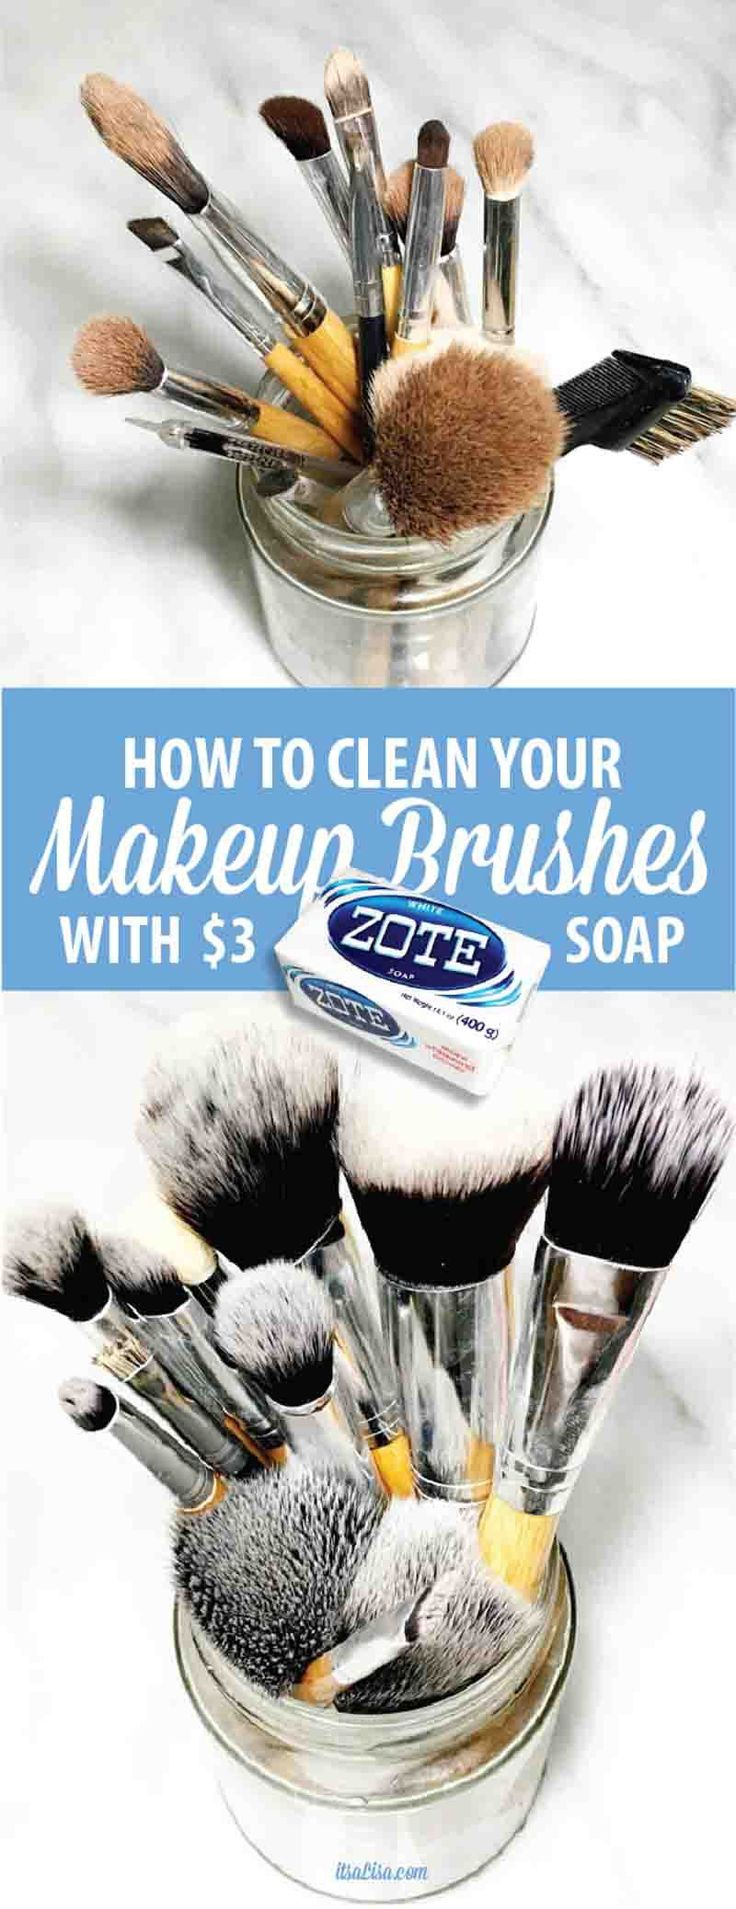 How To Wash Makeup Brushes With Zote Soap - This bright & quick soap makes cleaning your brushes a breeze! Less than 10 minutes to fluffy white makeup brushes. ;)